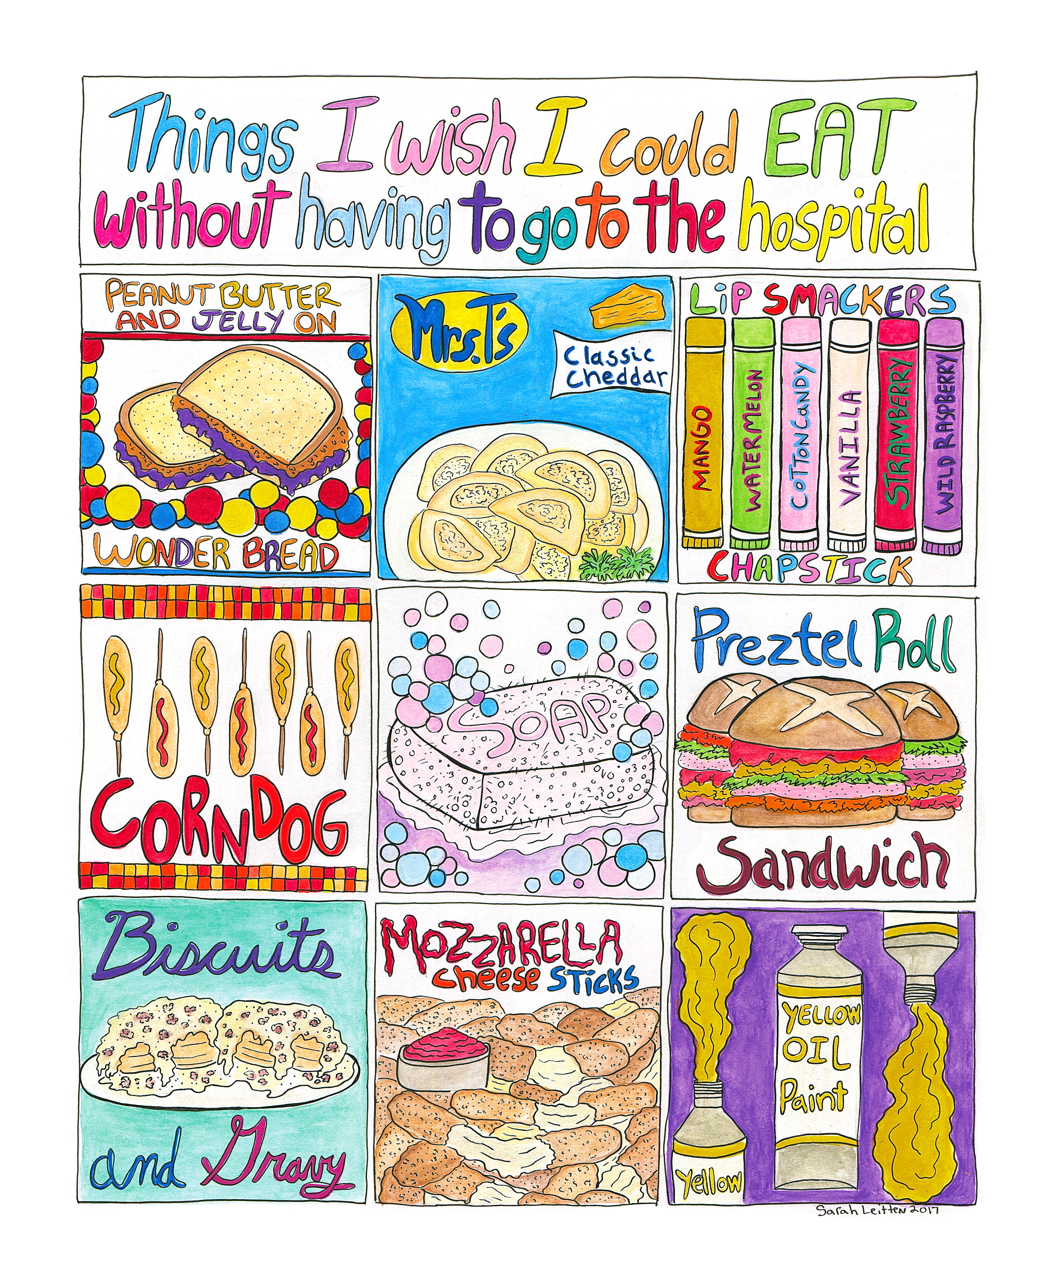 Things I Wish I Could Eat Without Having To Go To The Hospital